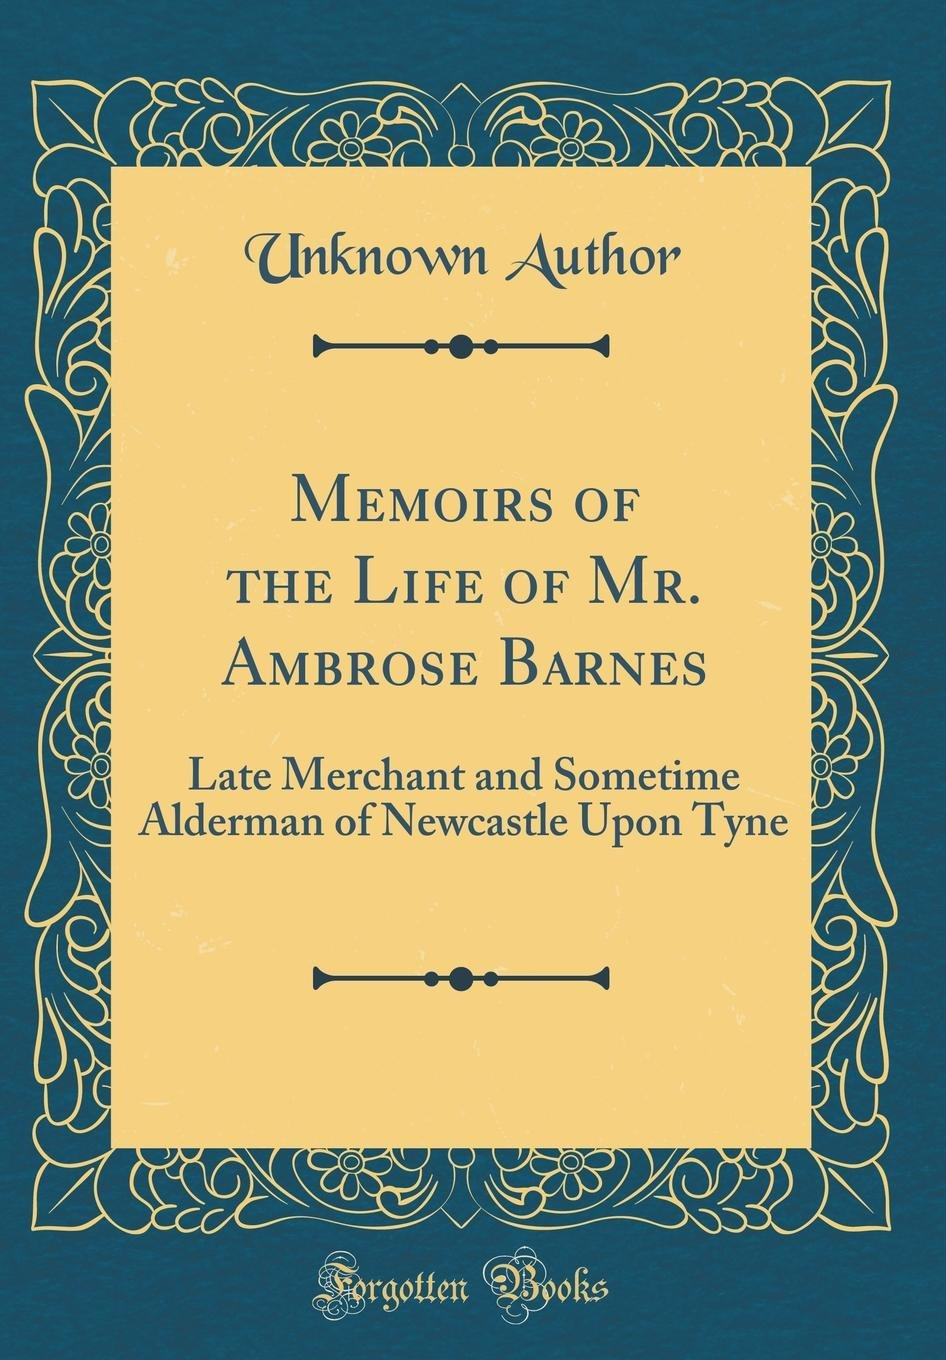 Memoirs of the Life of Mr. Ambrose Barnes: Late Merchant and Sometime Alderman of Newcastle Upon Tyne (Classic Reprint) ebook